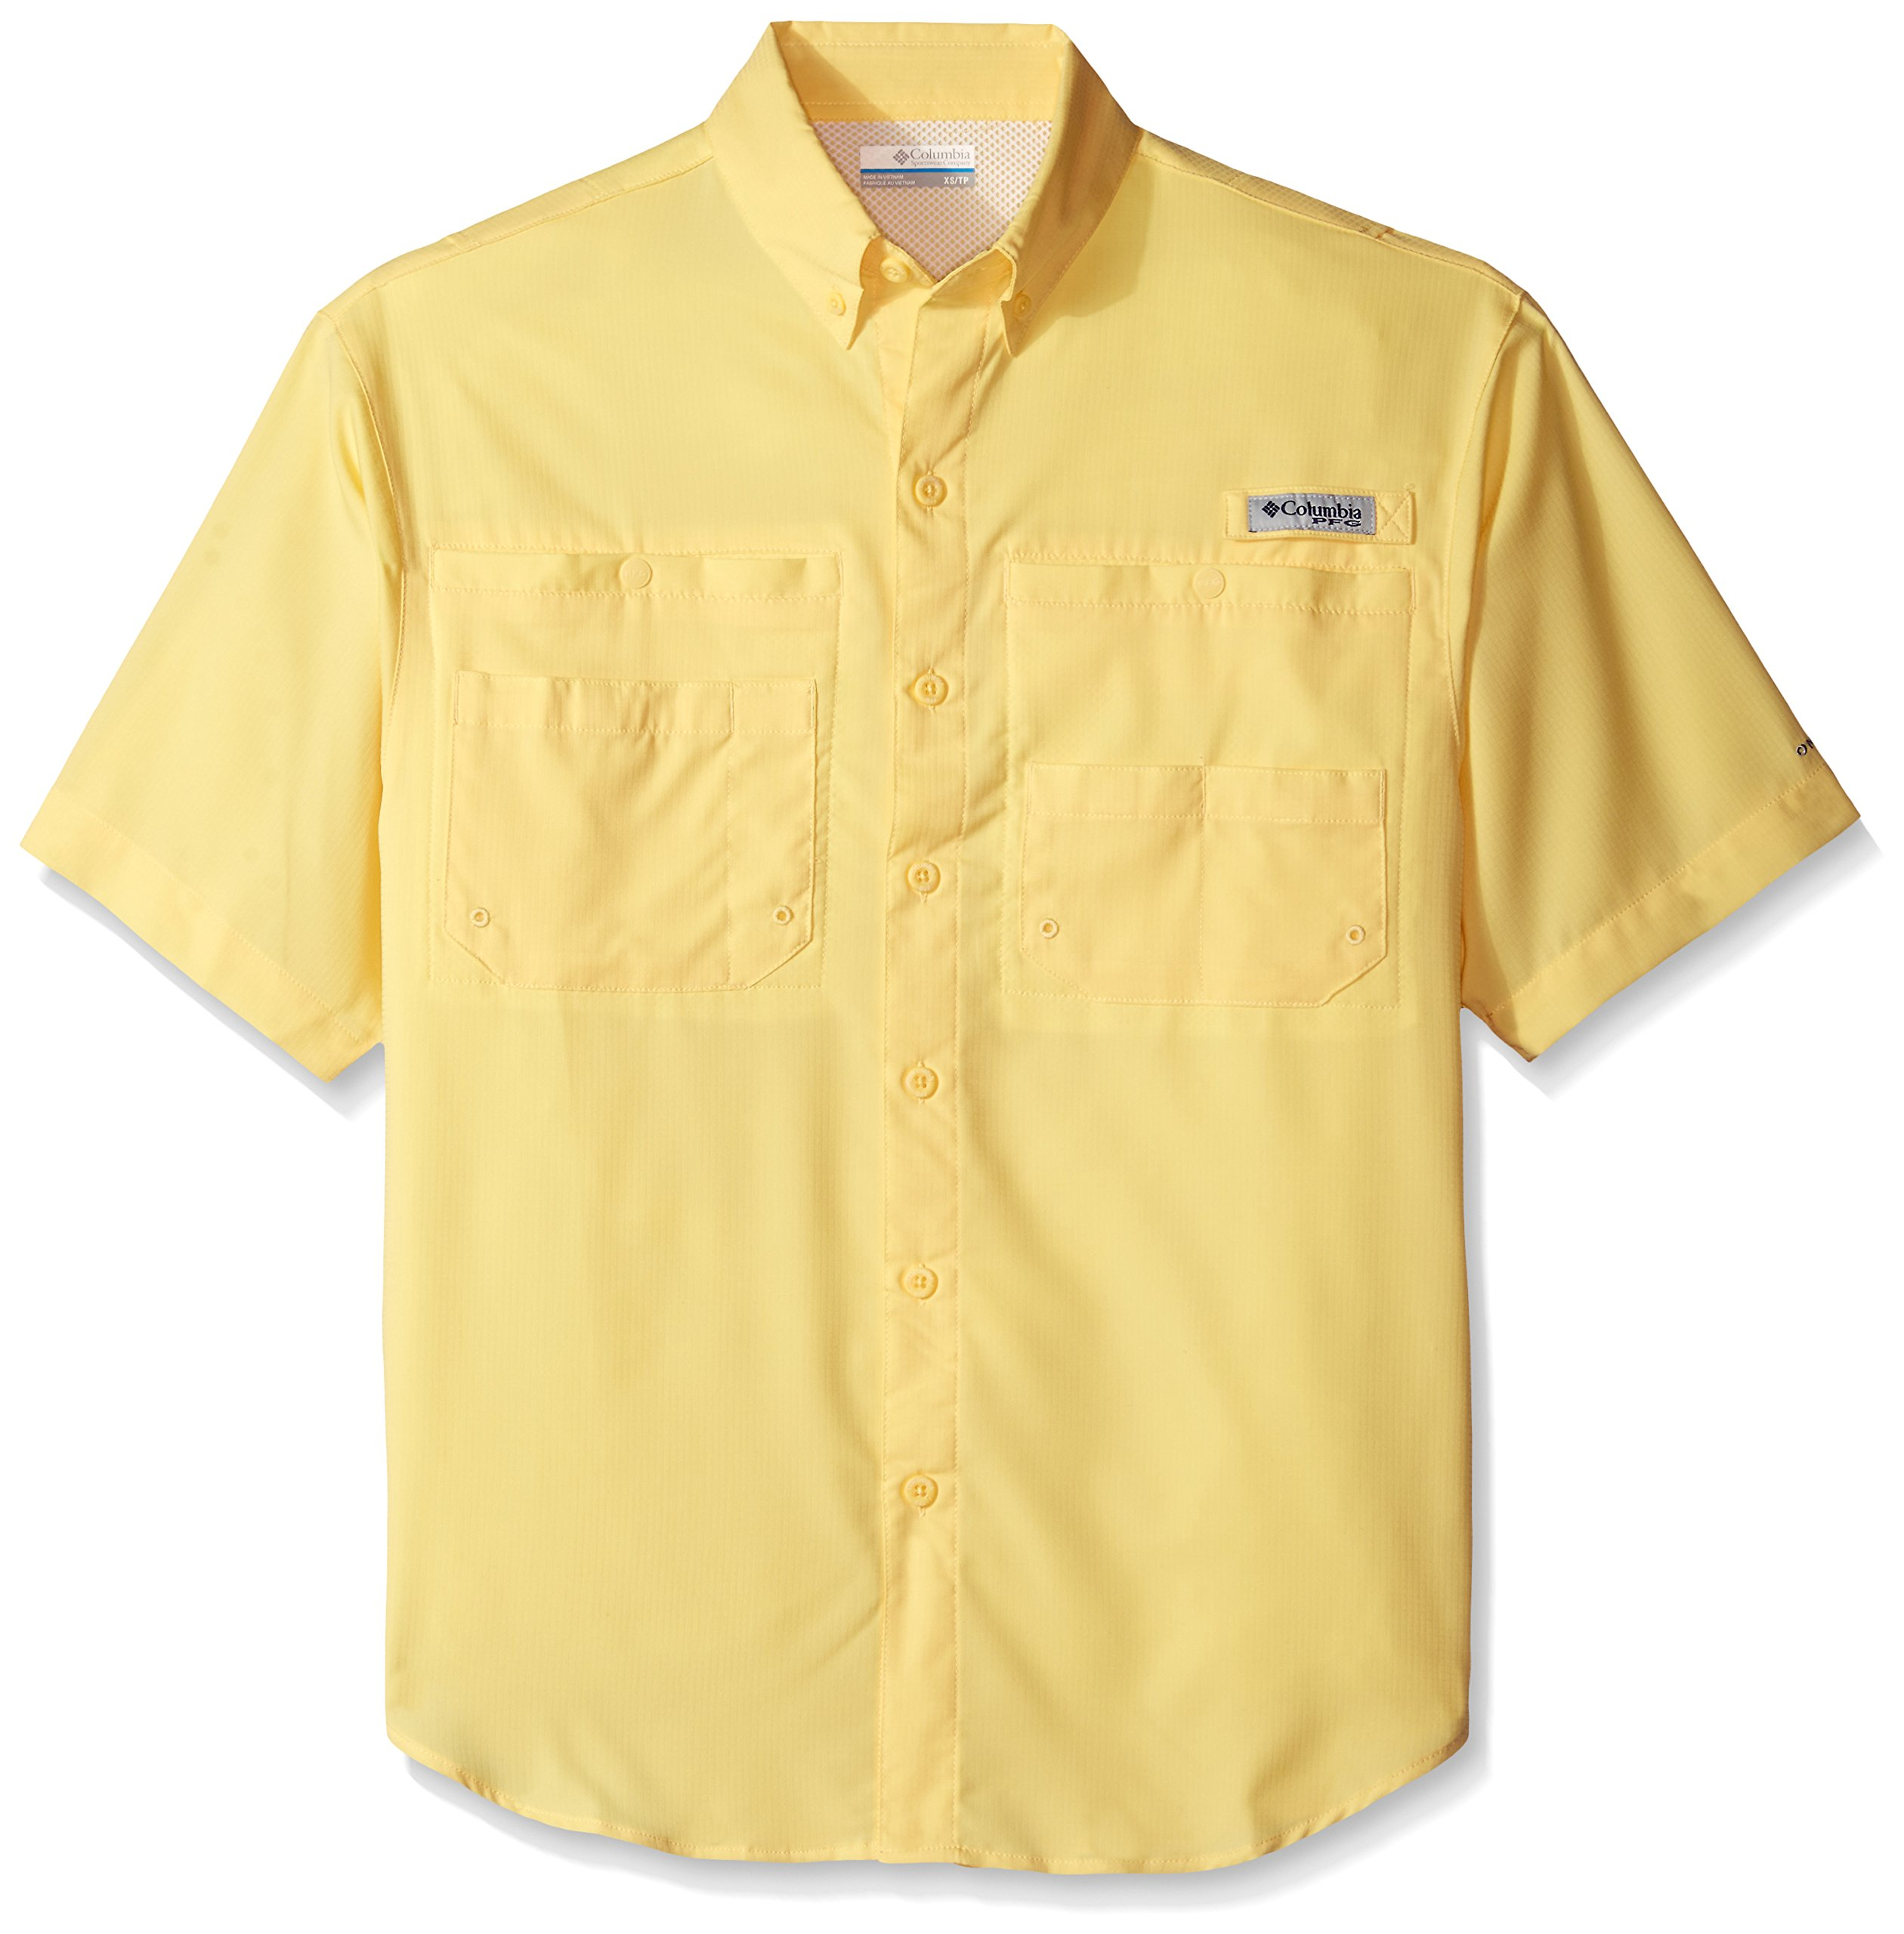 Columbia Men's Tamiami II Short Sleeve Fishing Shirt, Sunlit, X-Small